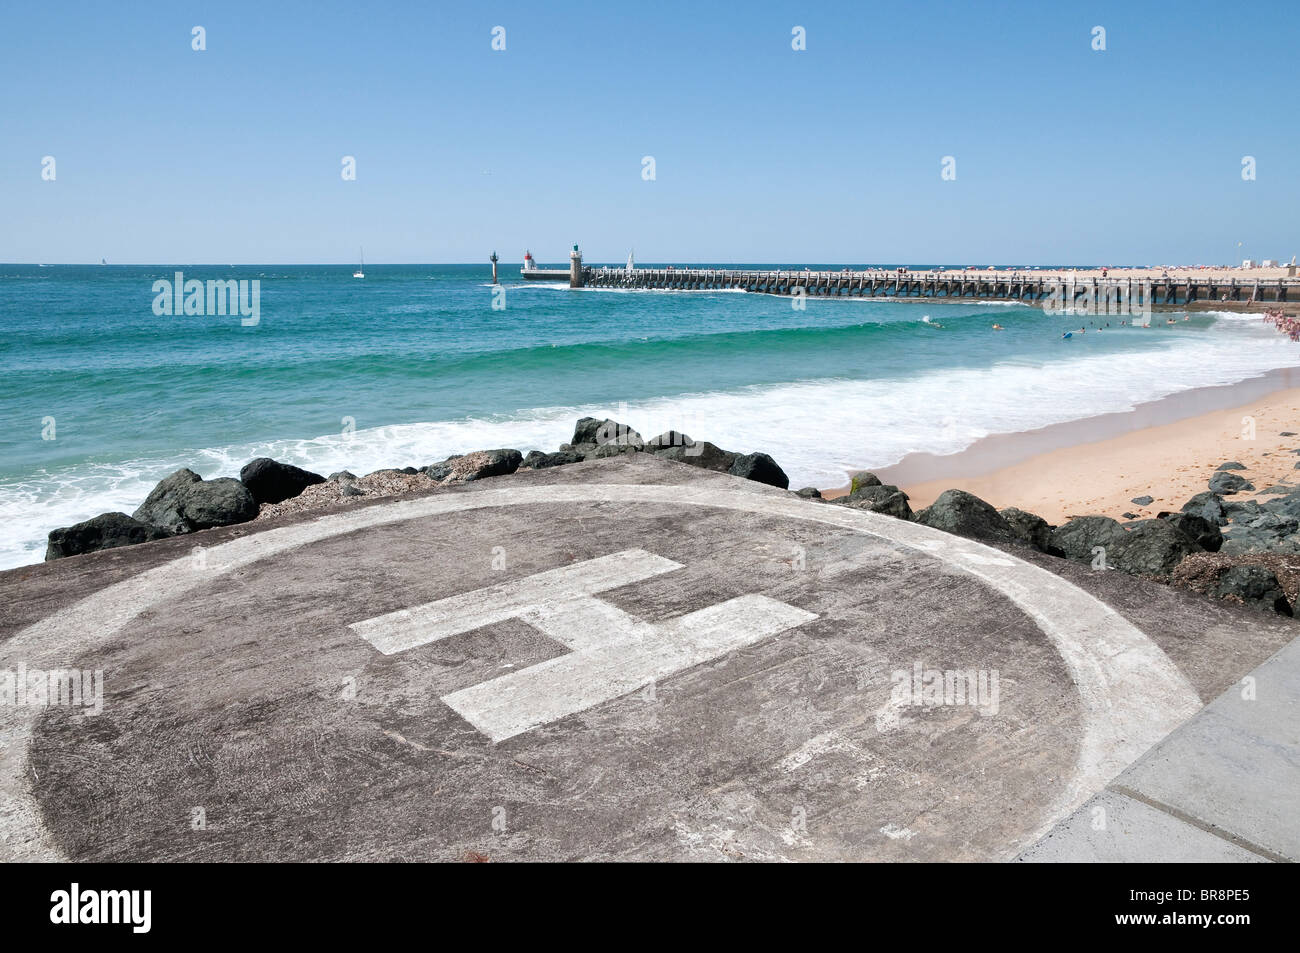 Landing area on the beach with sea and a jetty in the background during a beautiful day Stock Photo